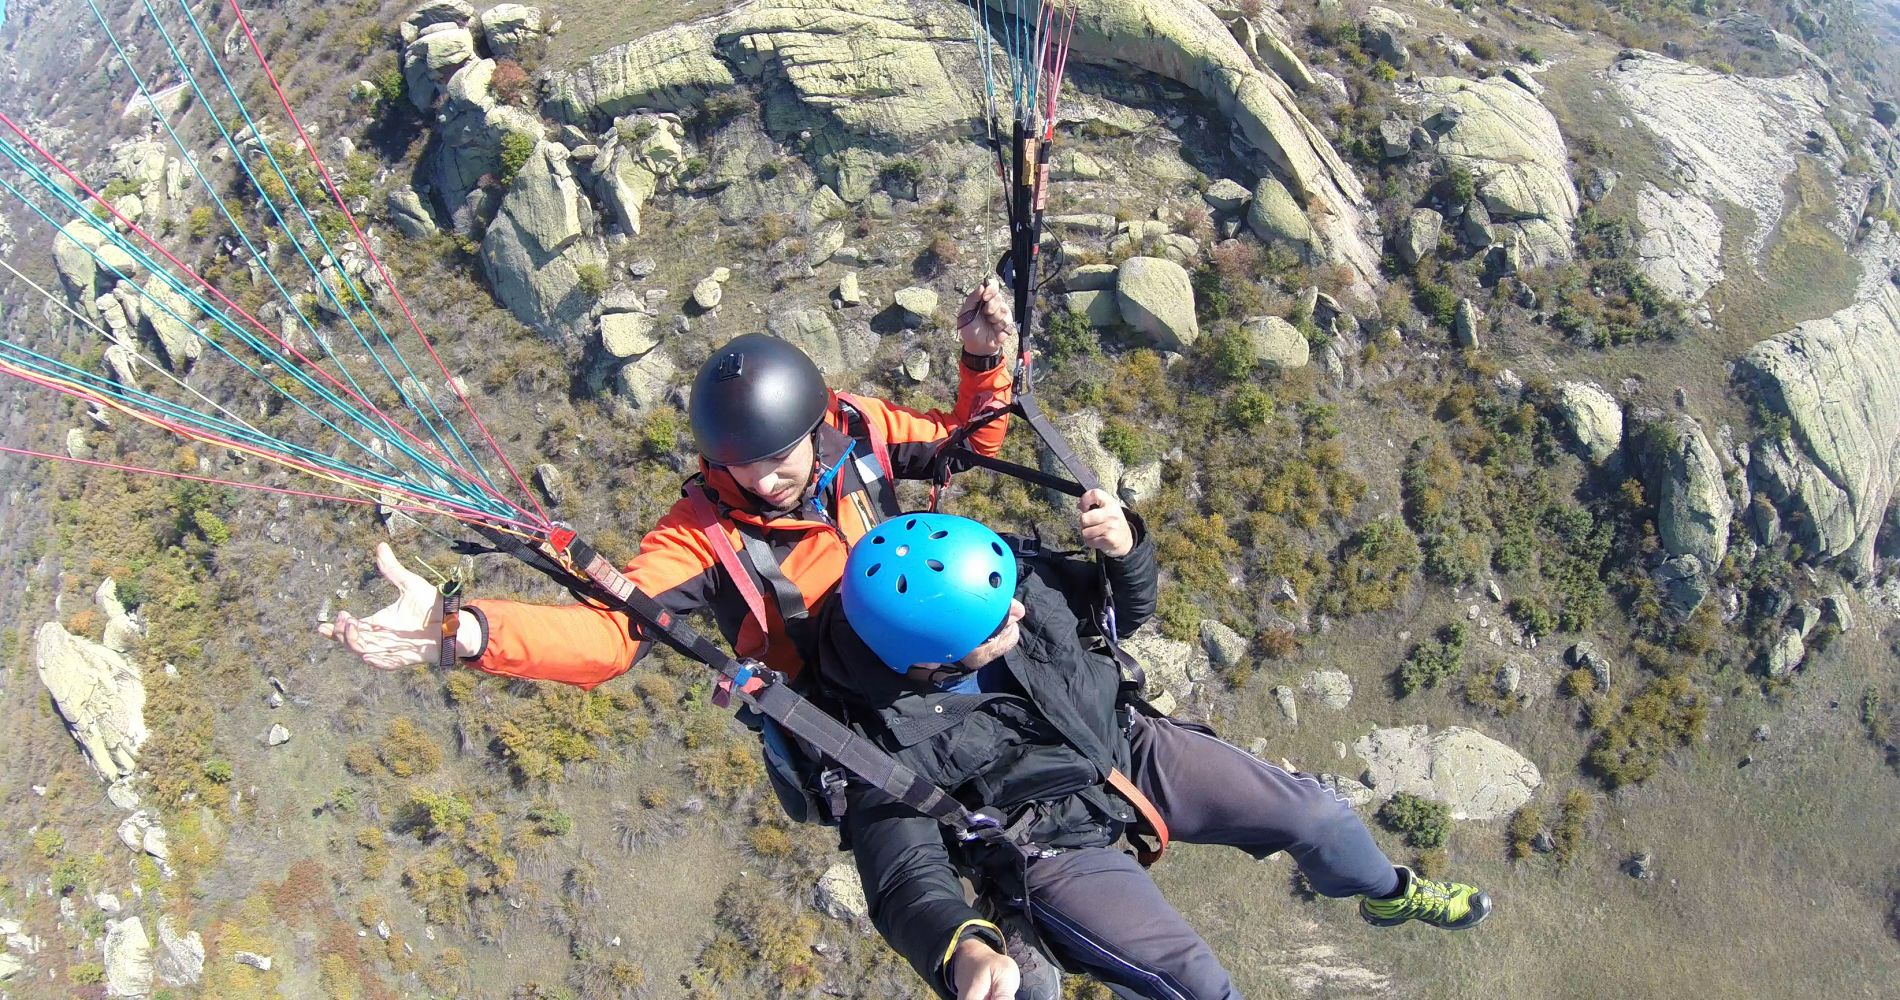 Paragliding Adventure Georgia Tinggly Experience Gifts